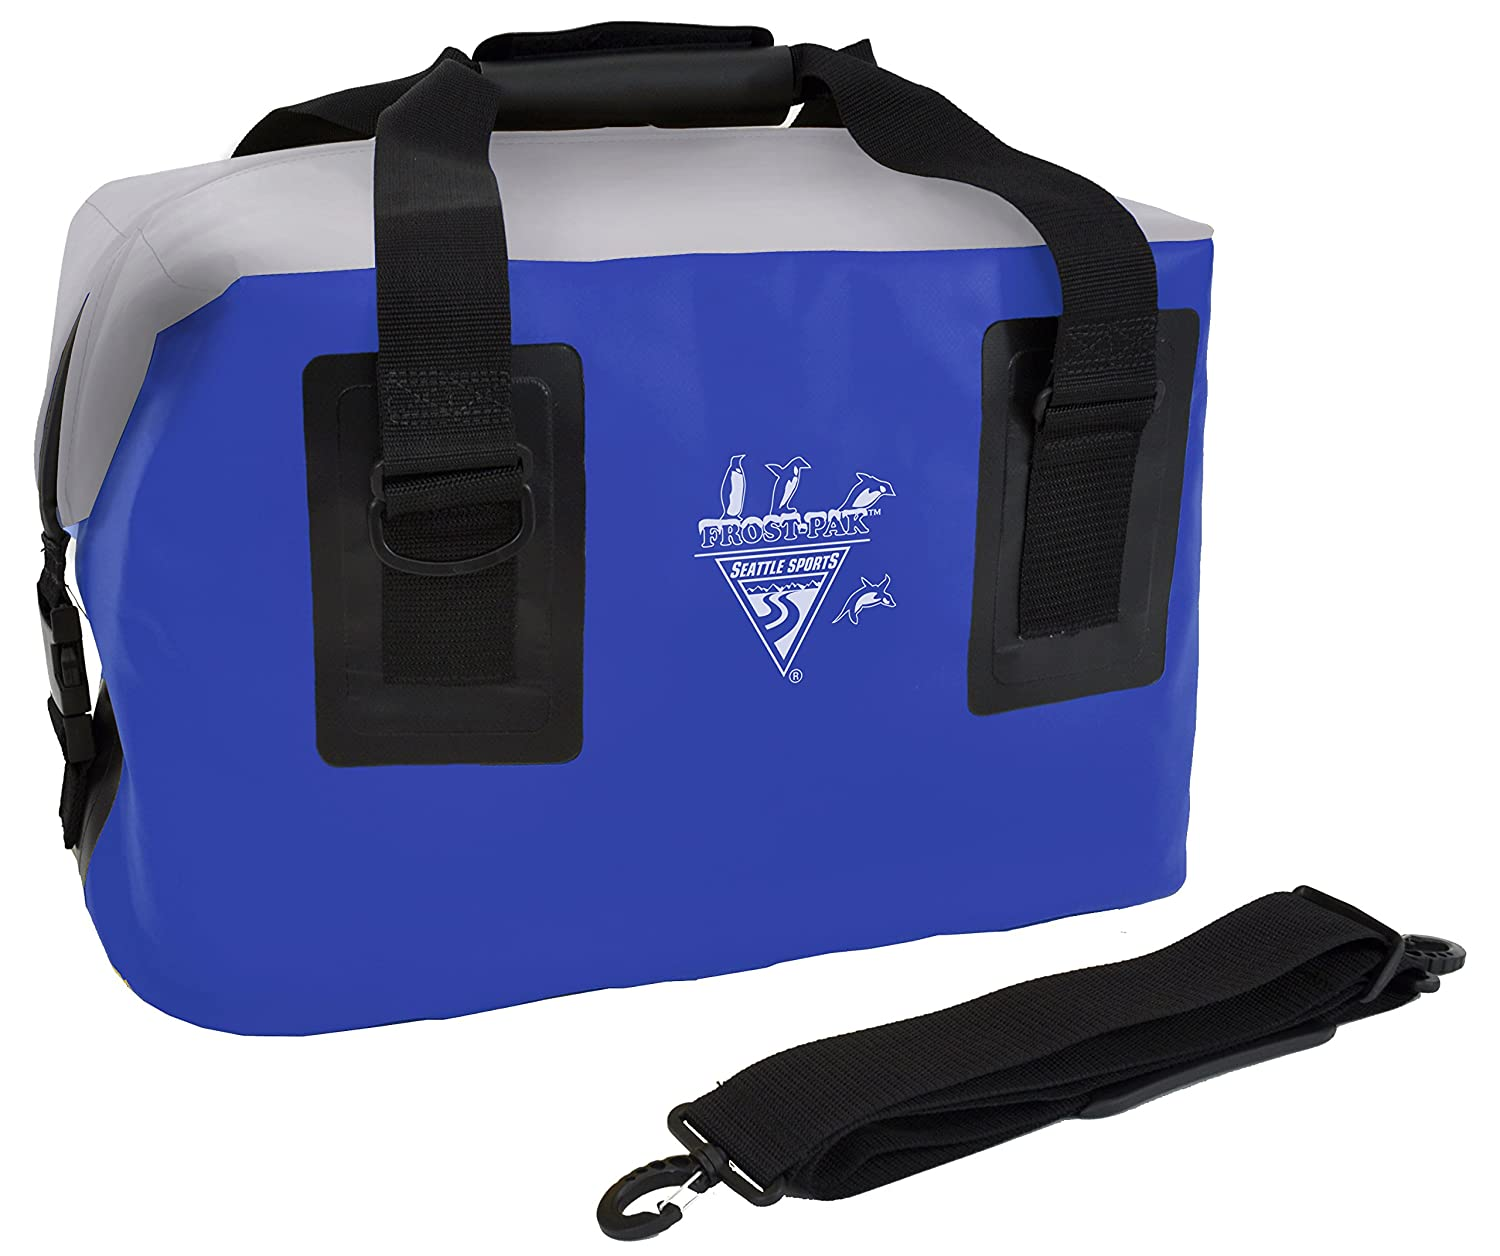 Seattle Sports Built USA frostpak 44 QT Zip Top cooler- blau